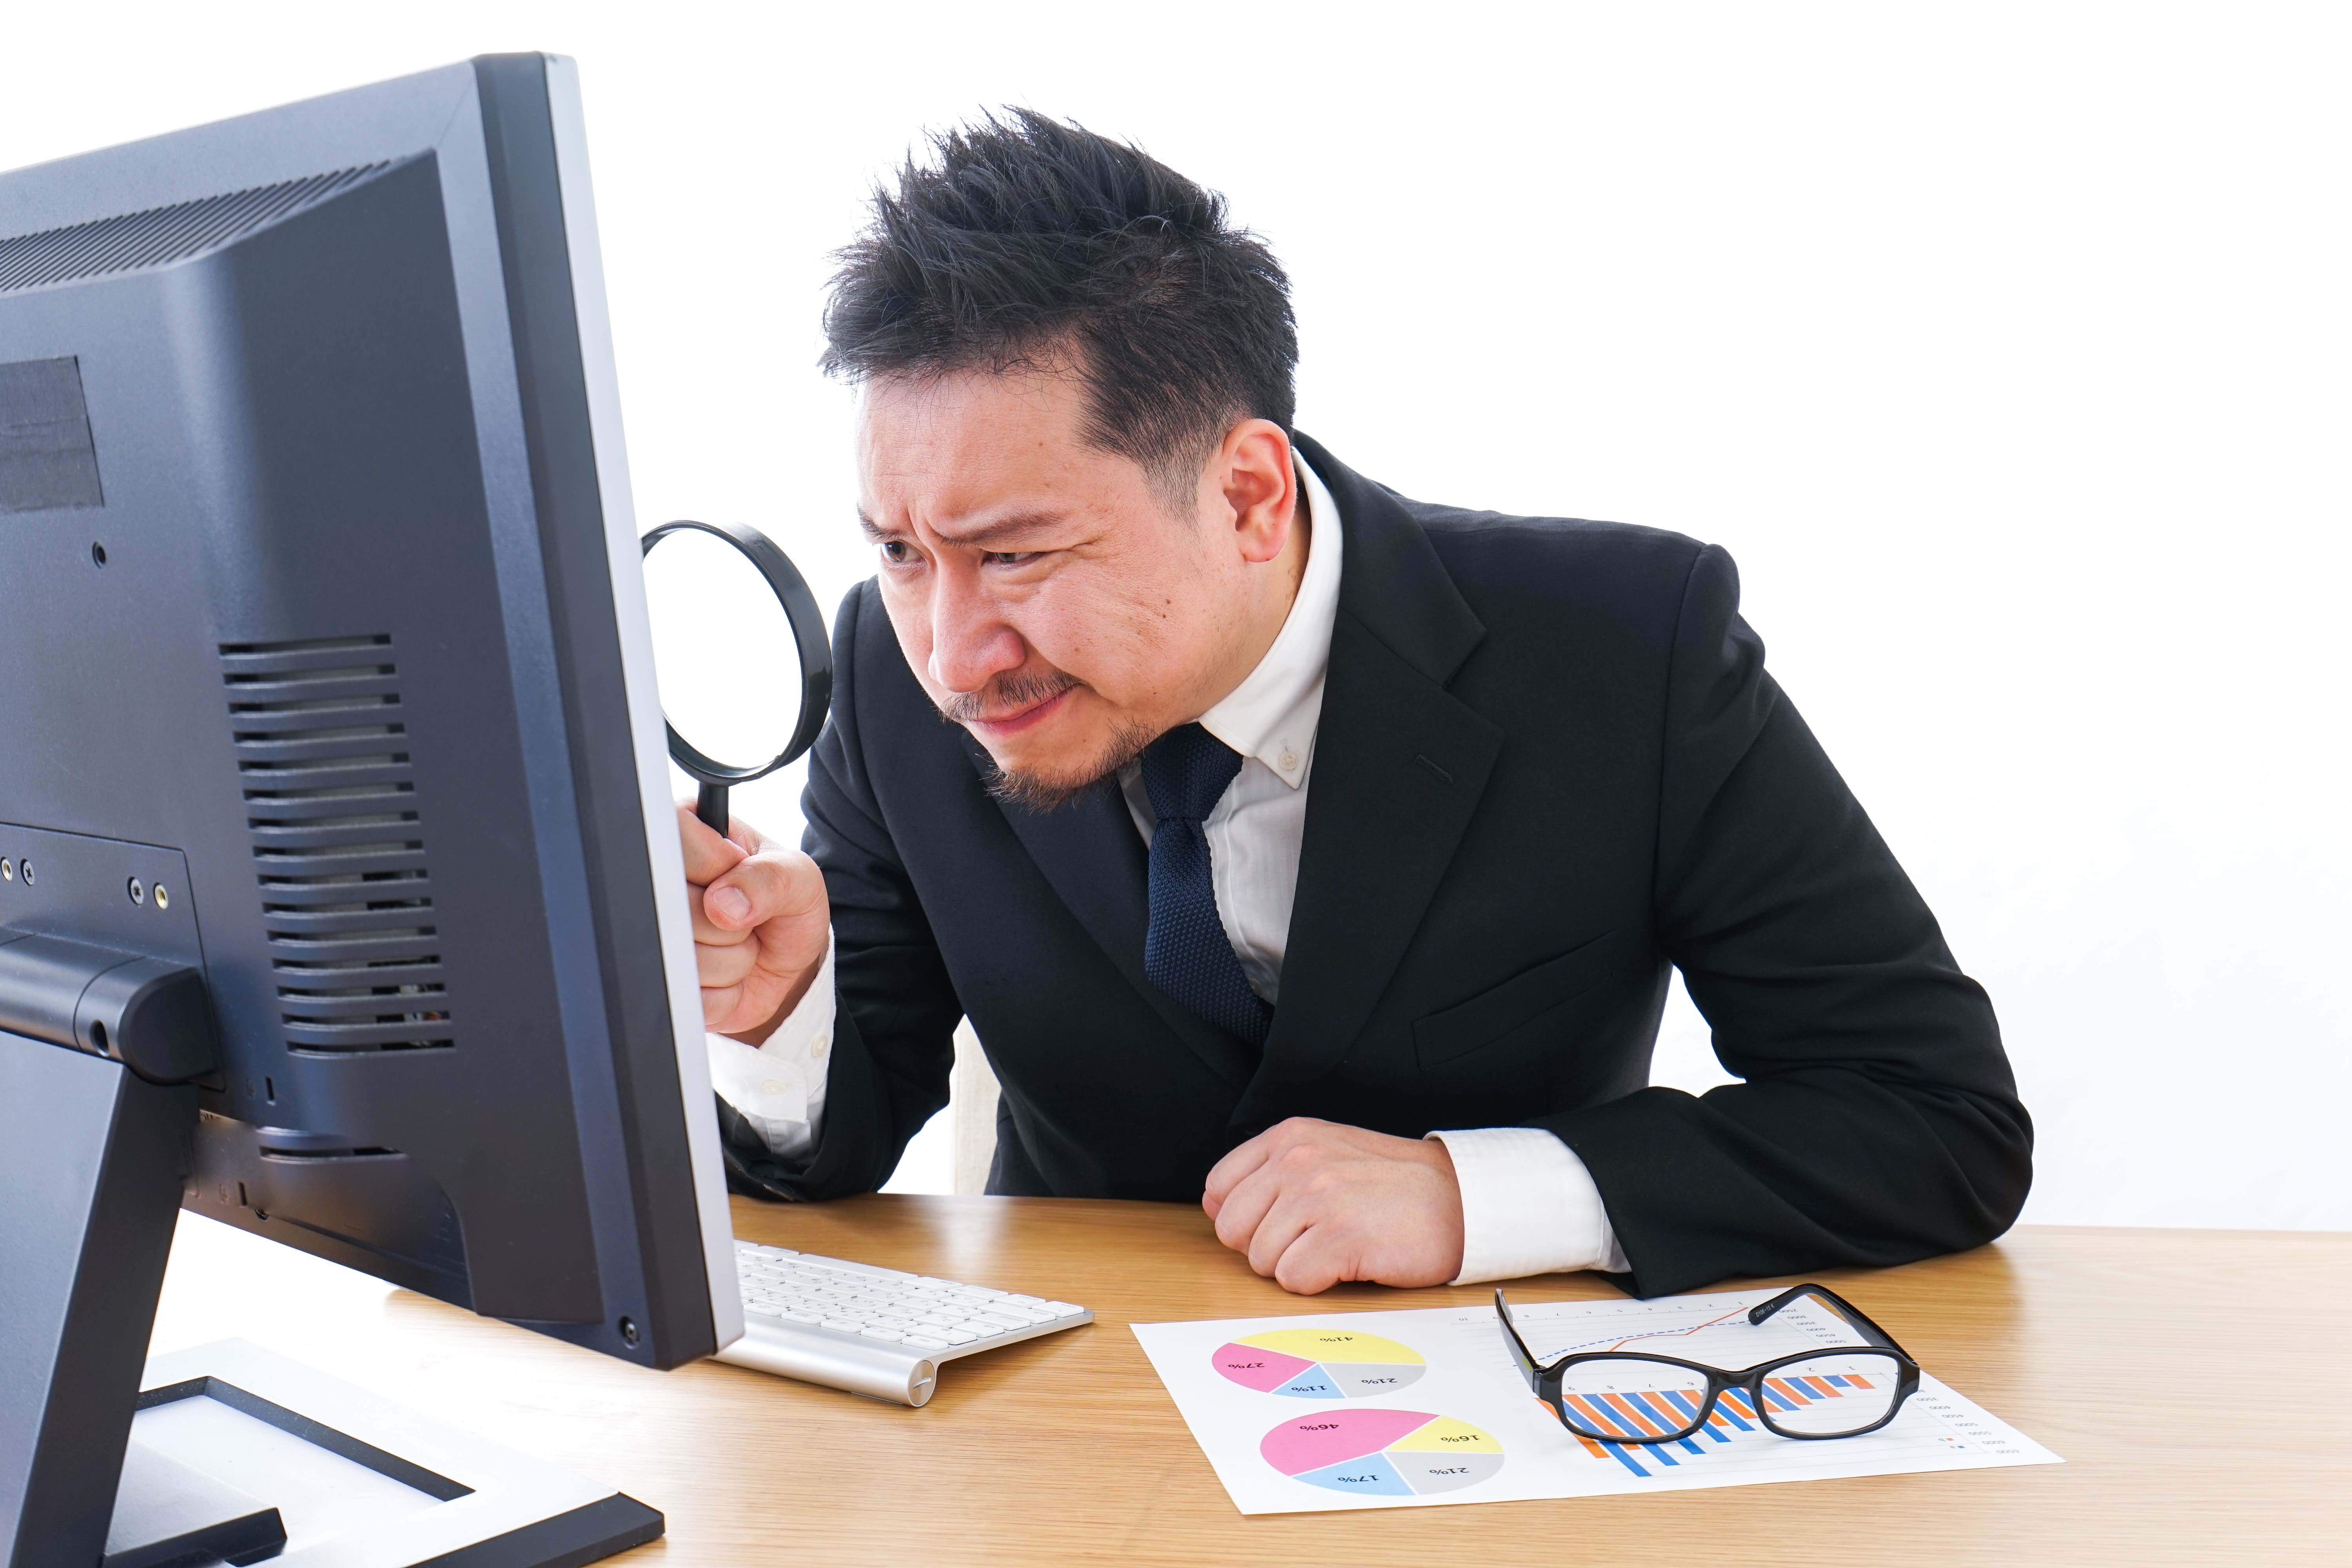 An employee searches for overlooked tax deductions to maximise his tax return